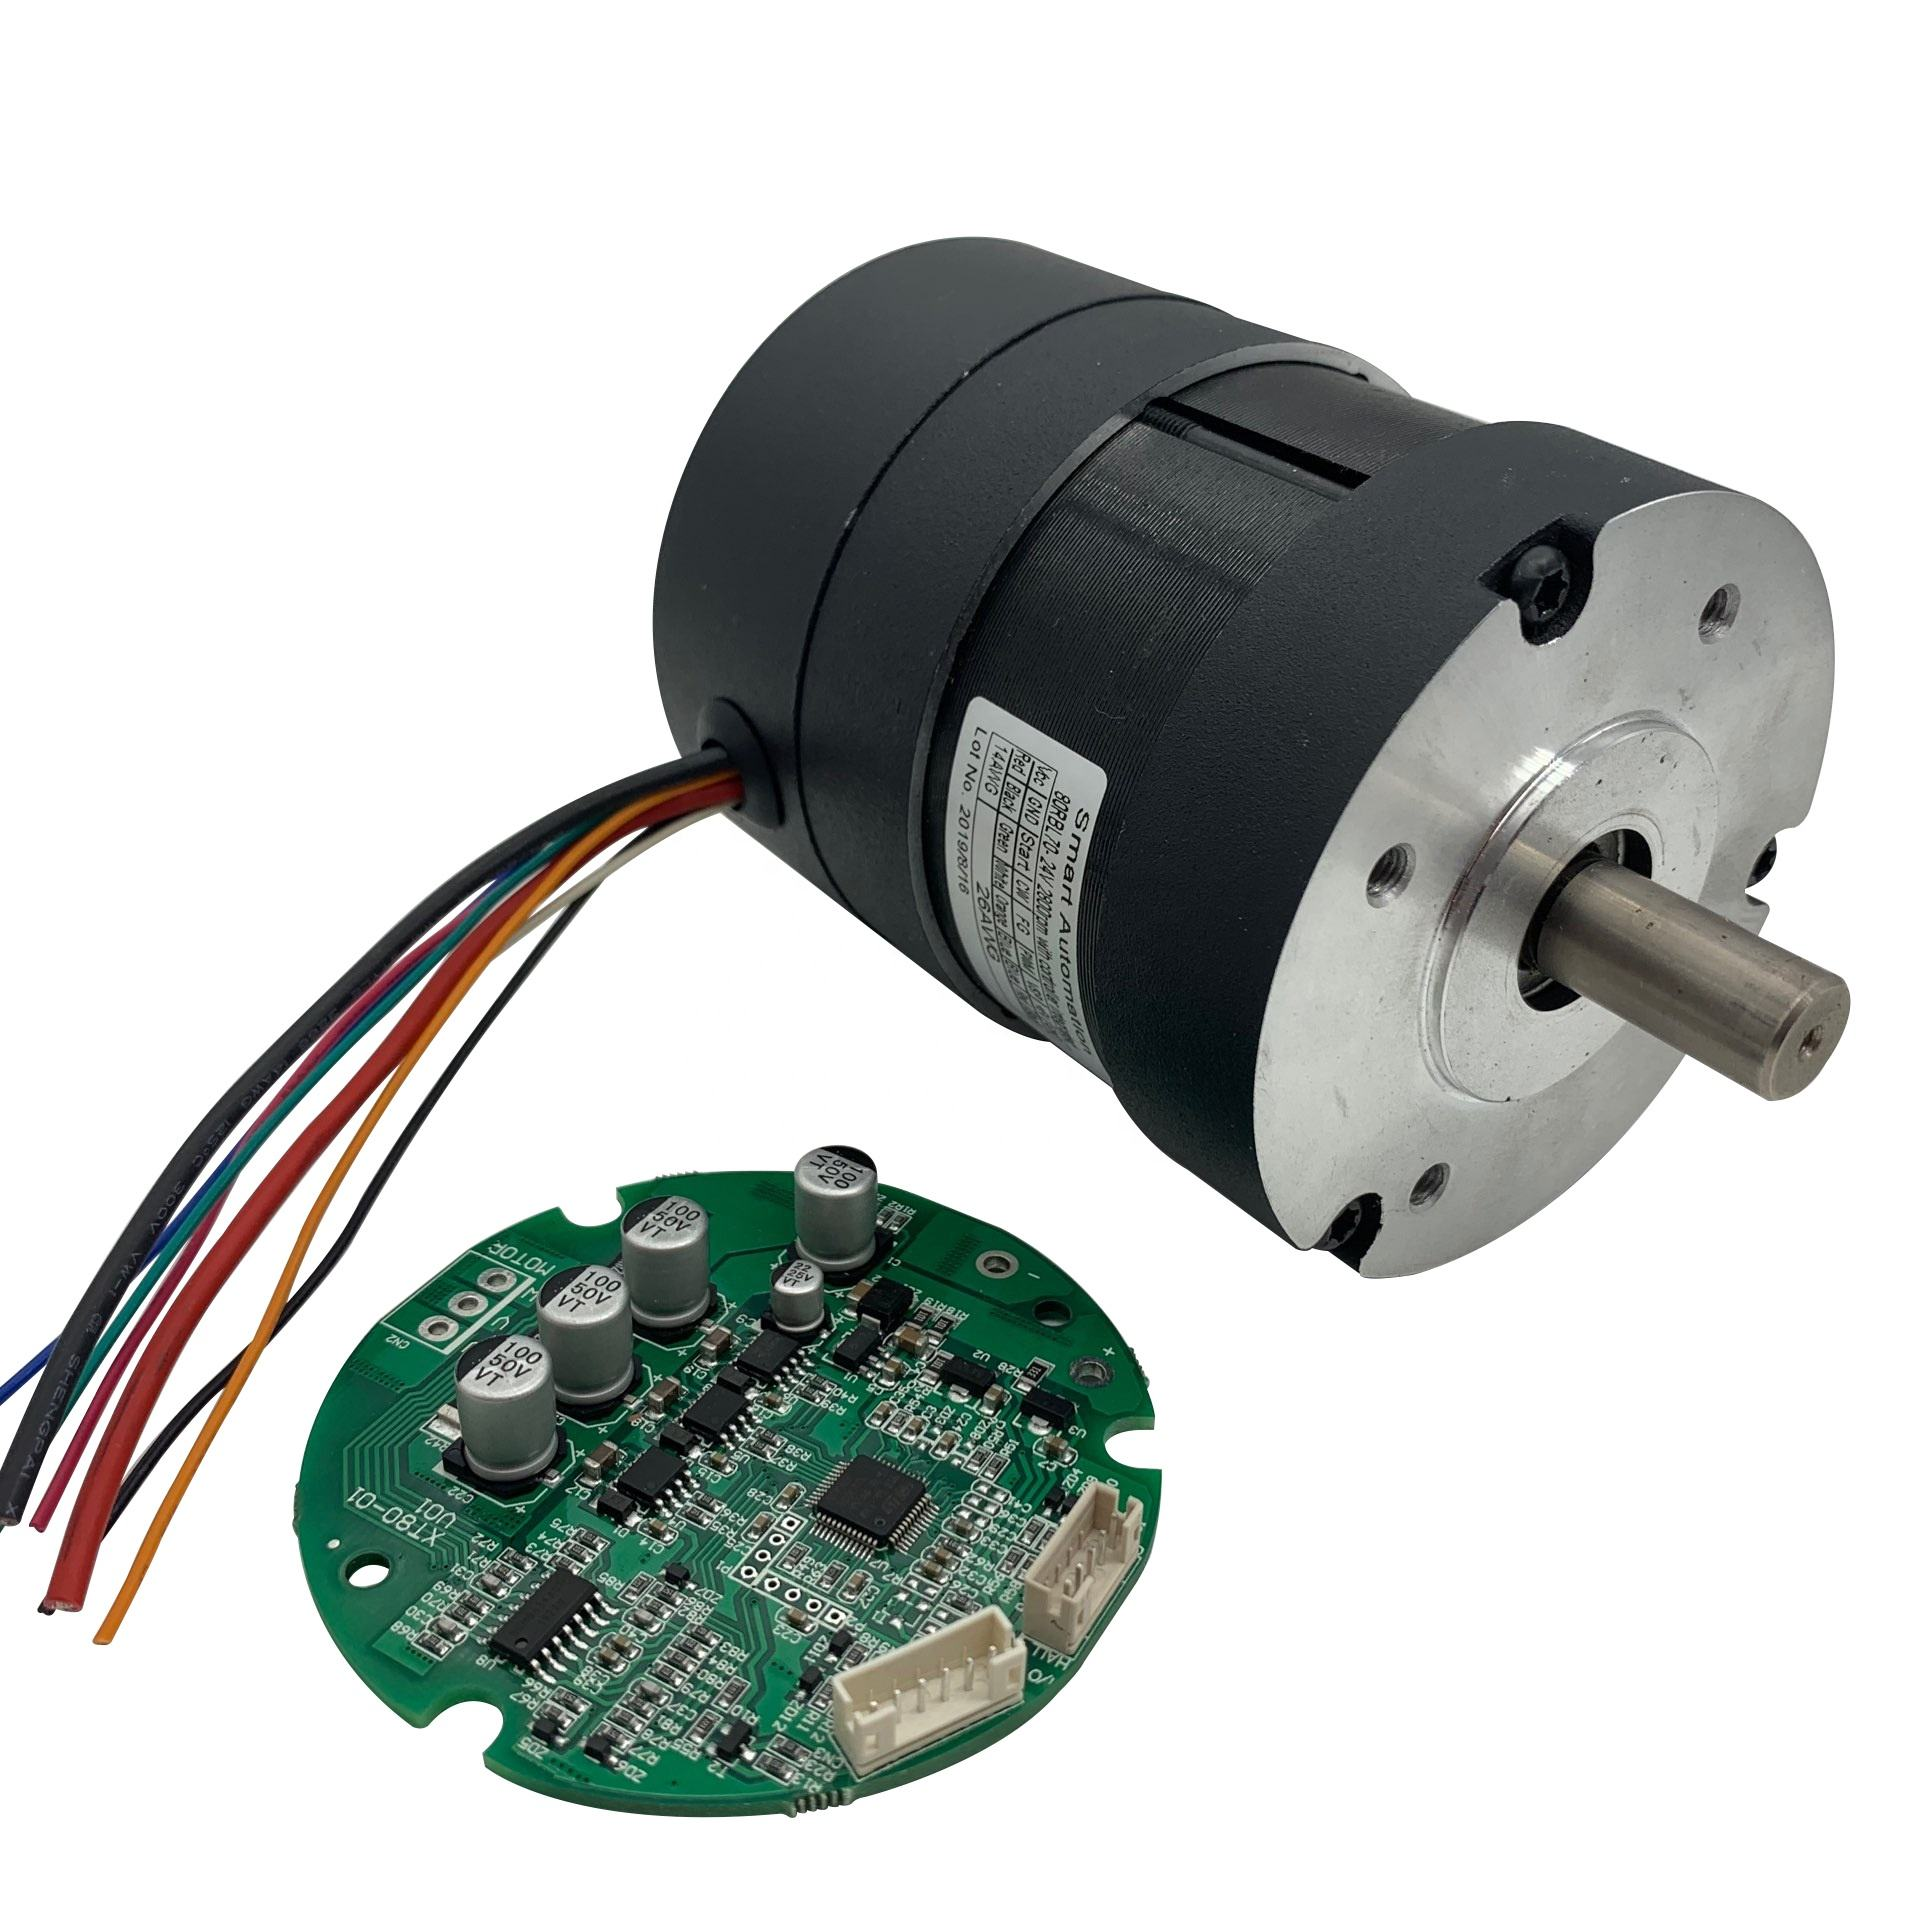 12 V 18 V 24 V Borstelloze Dc Fan Motor Bldc Blower Motoren Hoge Snelheid High Power 100 W 200 W 300 W 500 W